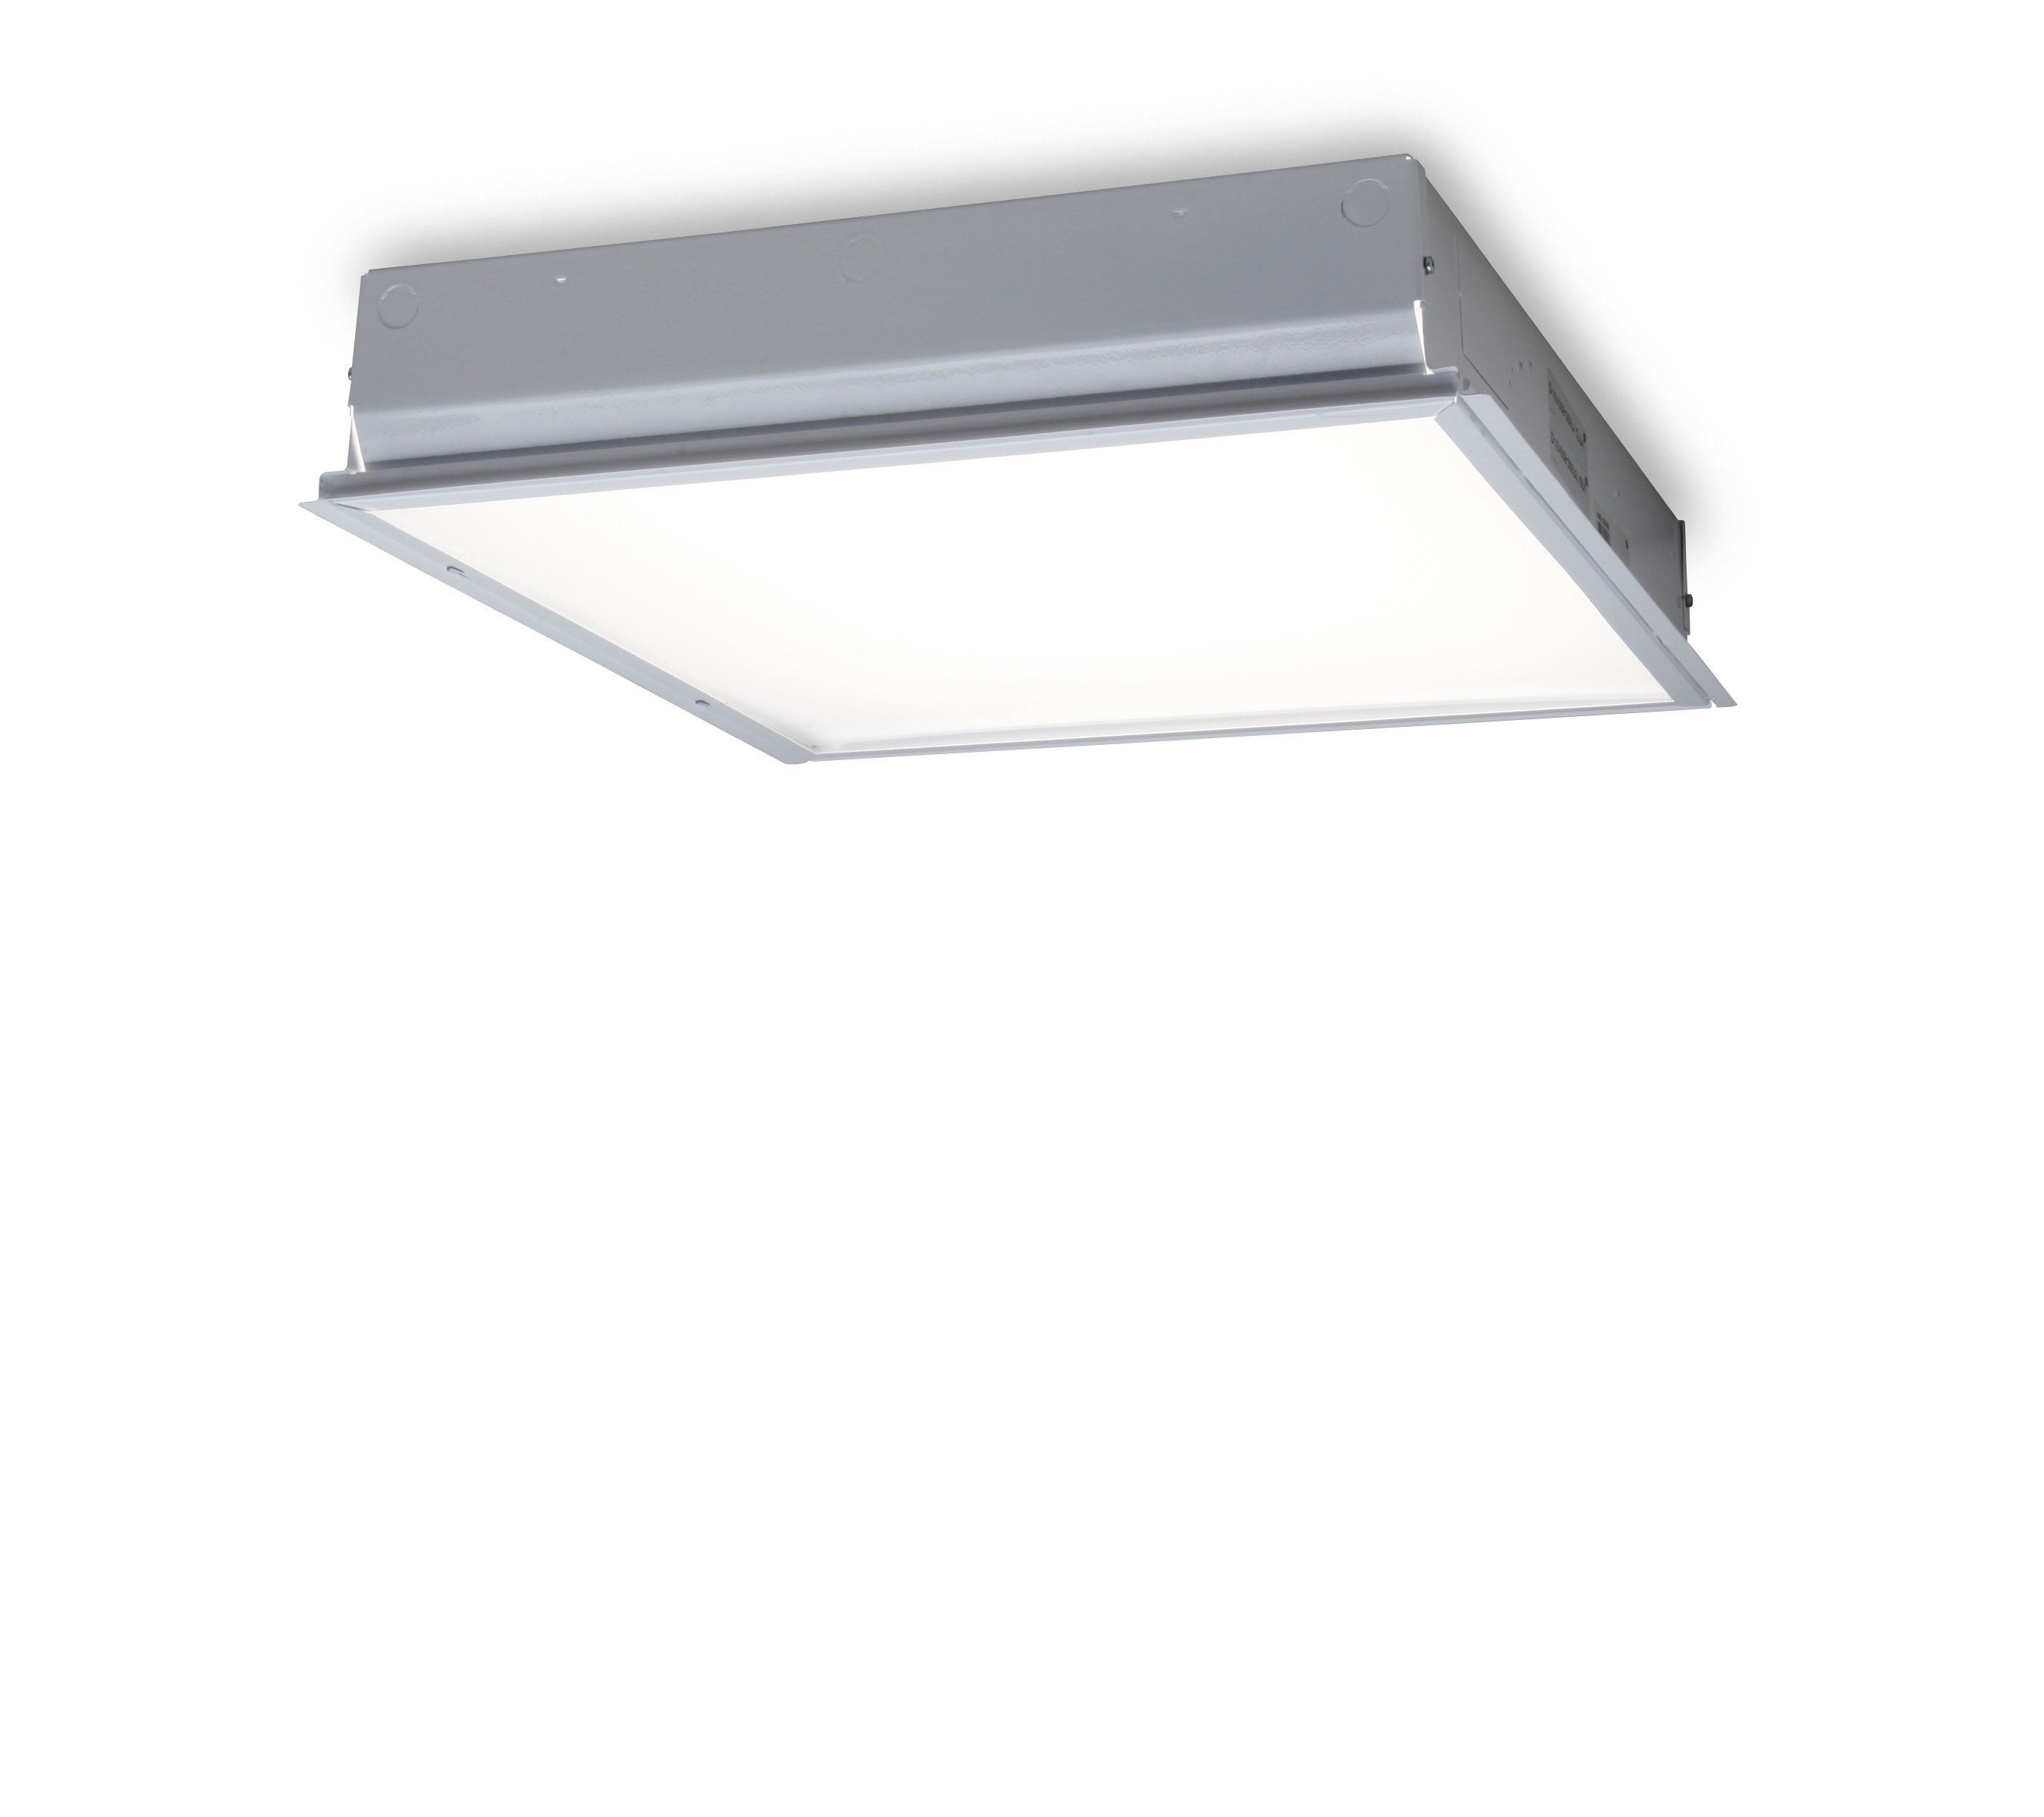 ge s lumination br series led lighting fixture for commercial ceilings ge lighting north. Black Bedroom Furniture Sets. Home Design Ideas